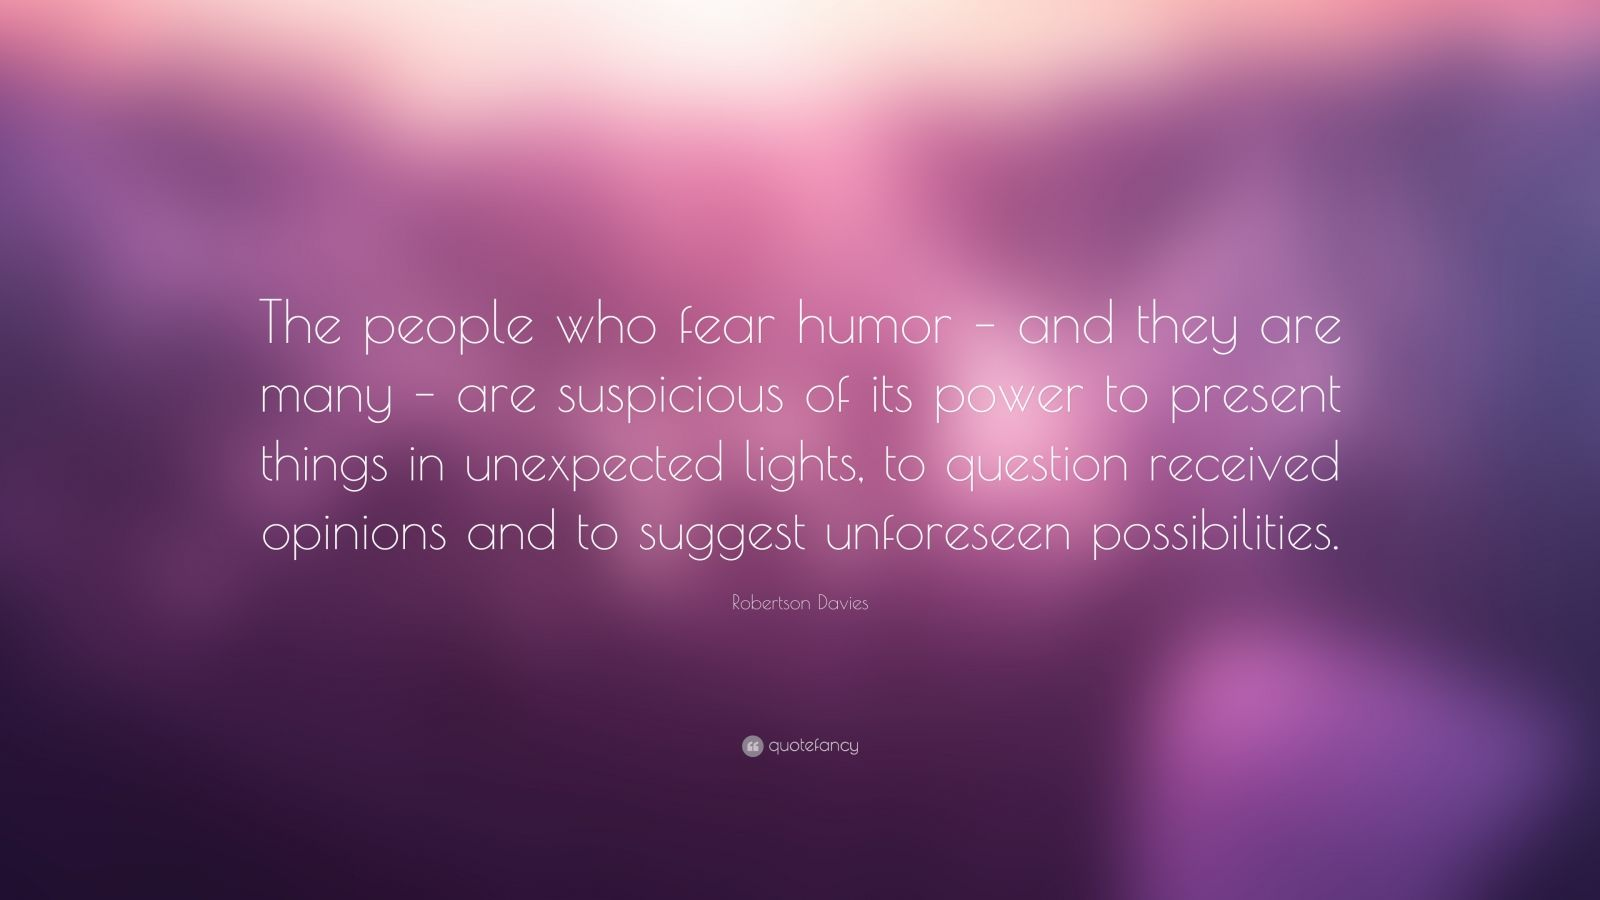 """Robertson Davies Quote: """"The people who fear humor – and they are many – are suspicious of its power to present things in unexpected lights, to question received opinions and to suggest unforeseen possibilities."""""""